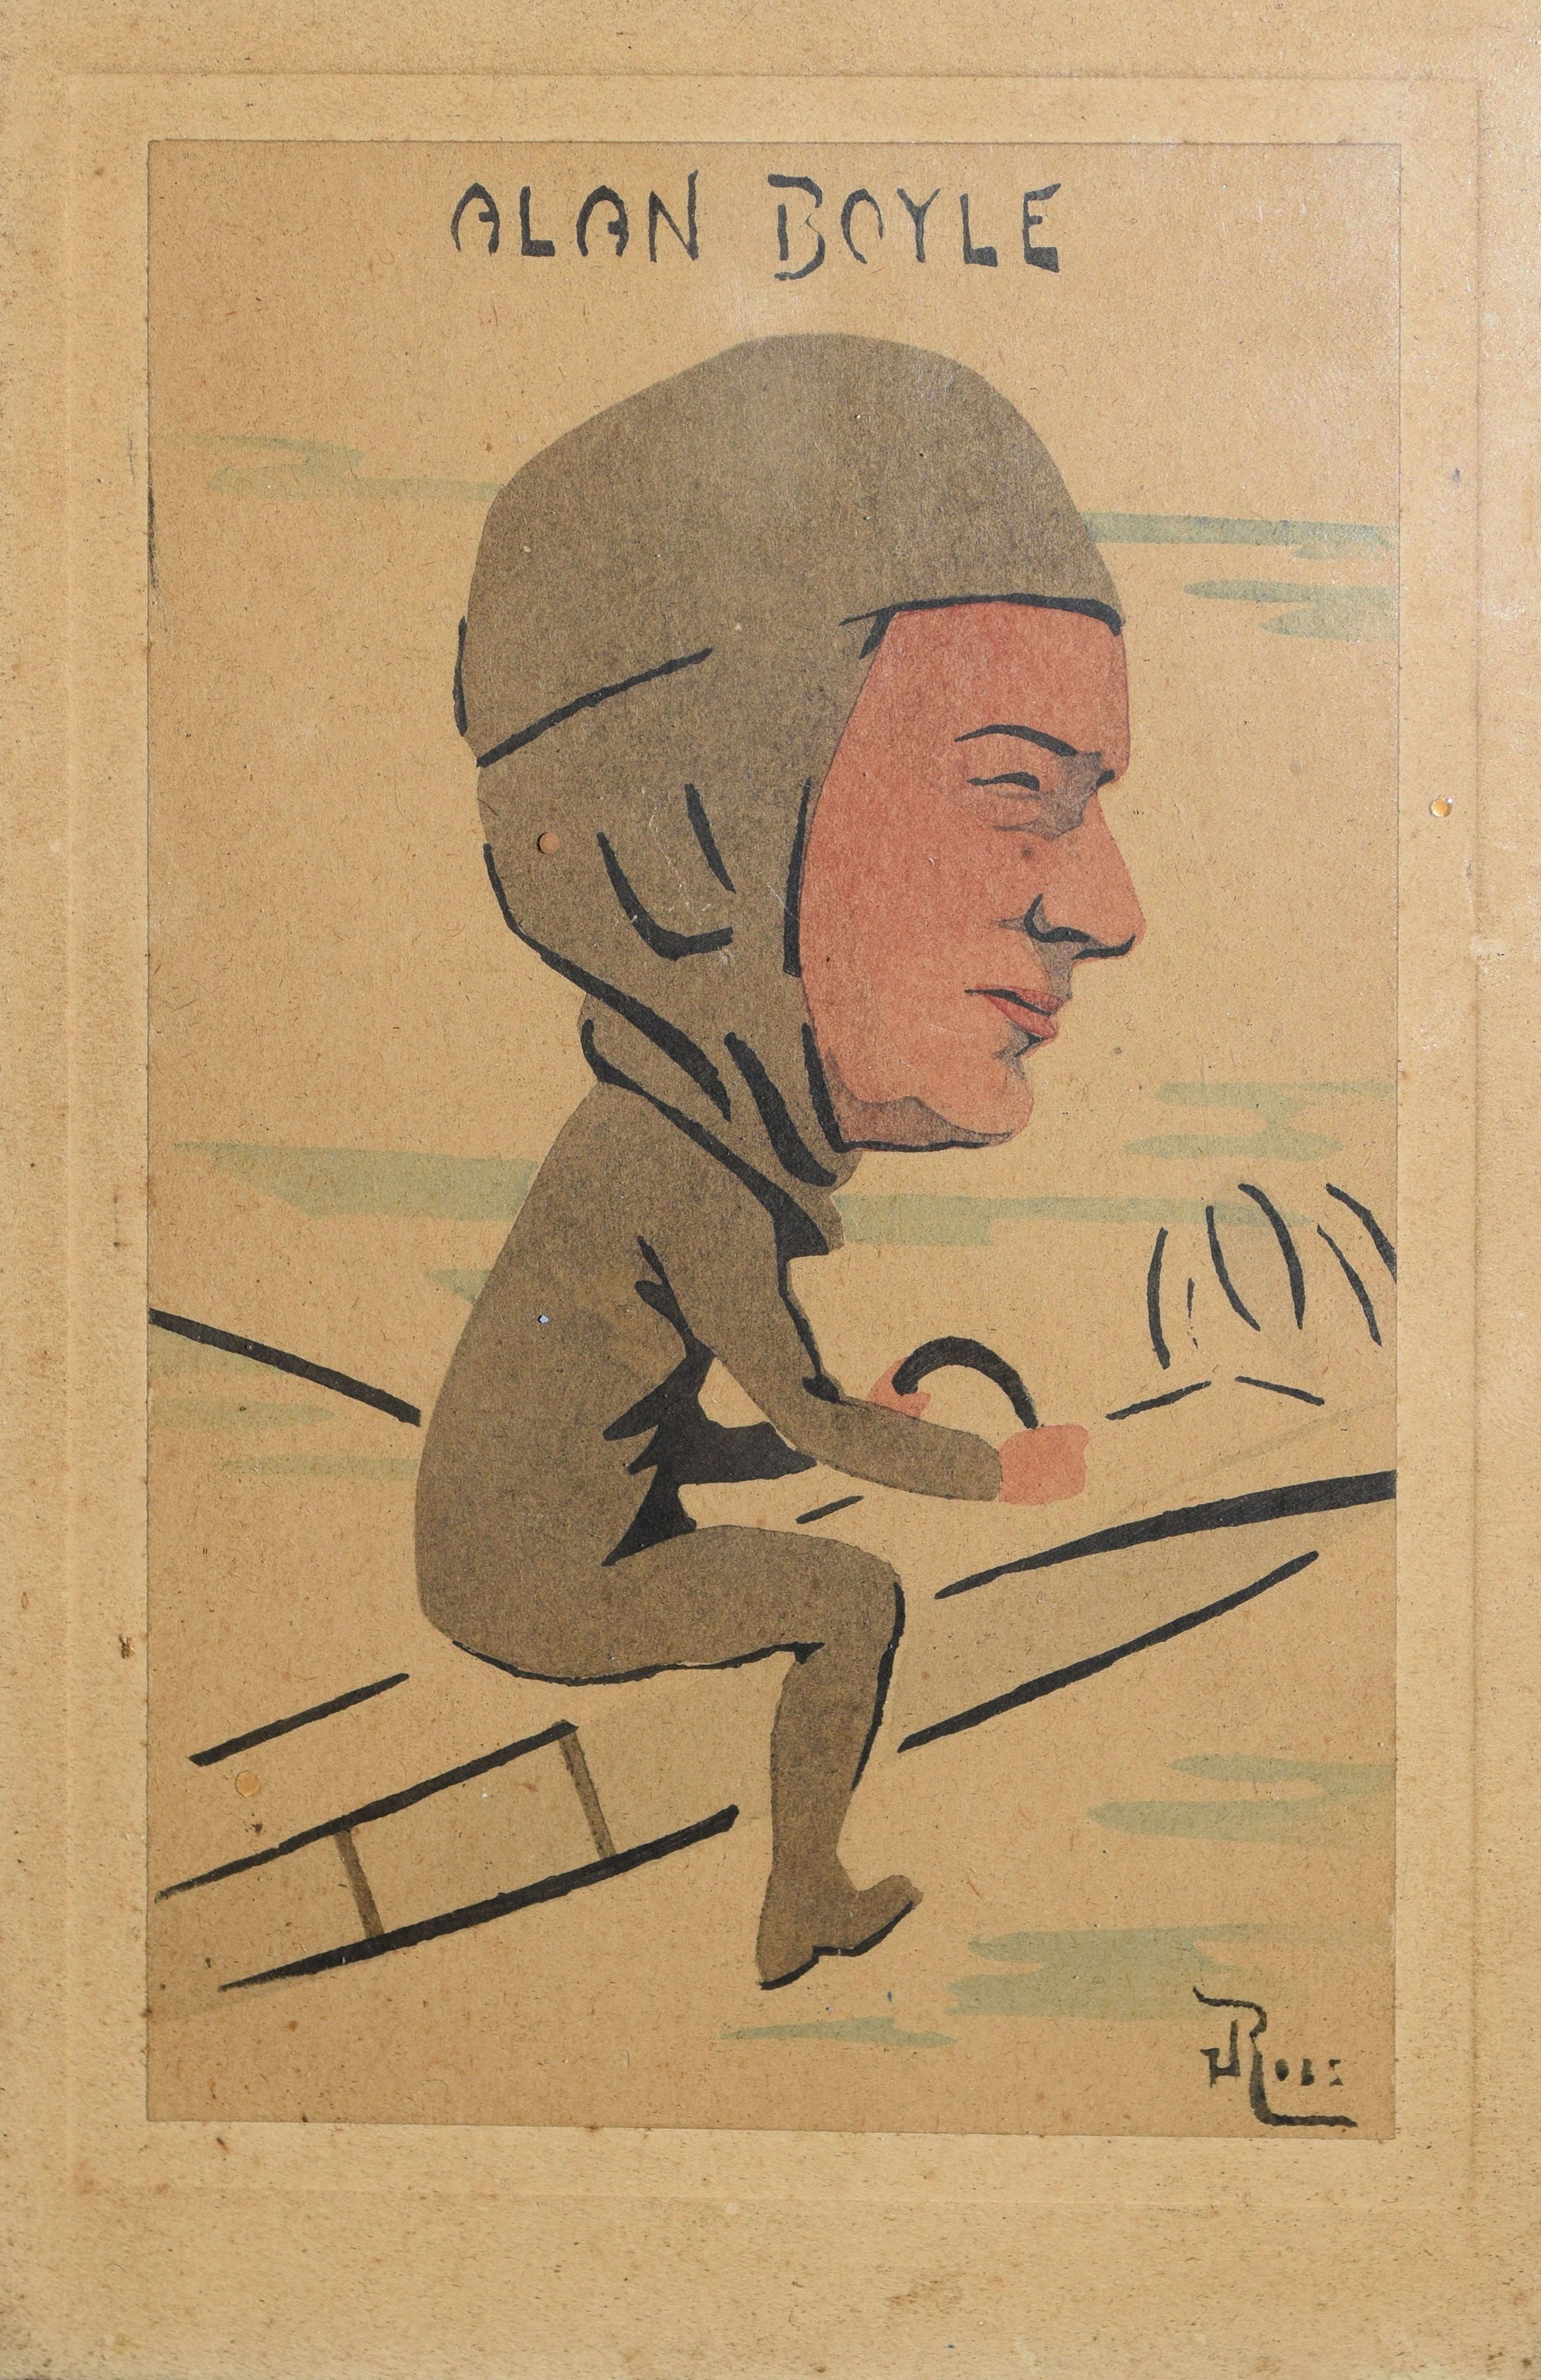 """J Ross, """"Alan Boyle"""", watercolour caricature, signed and inscribed with title, 14 x 9cm"""